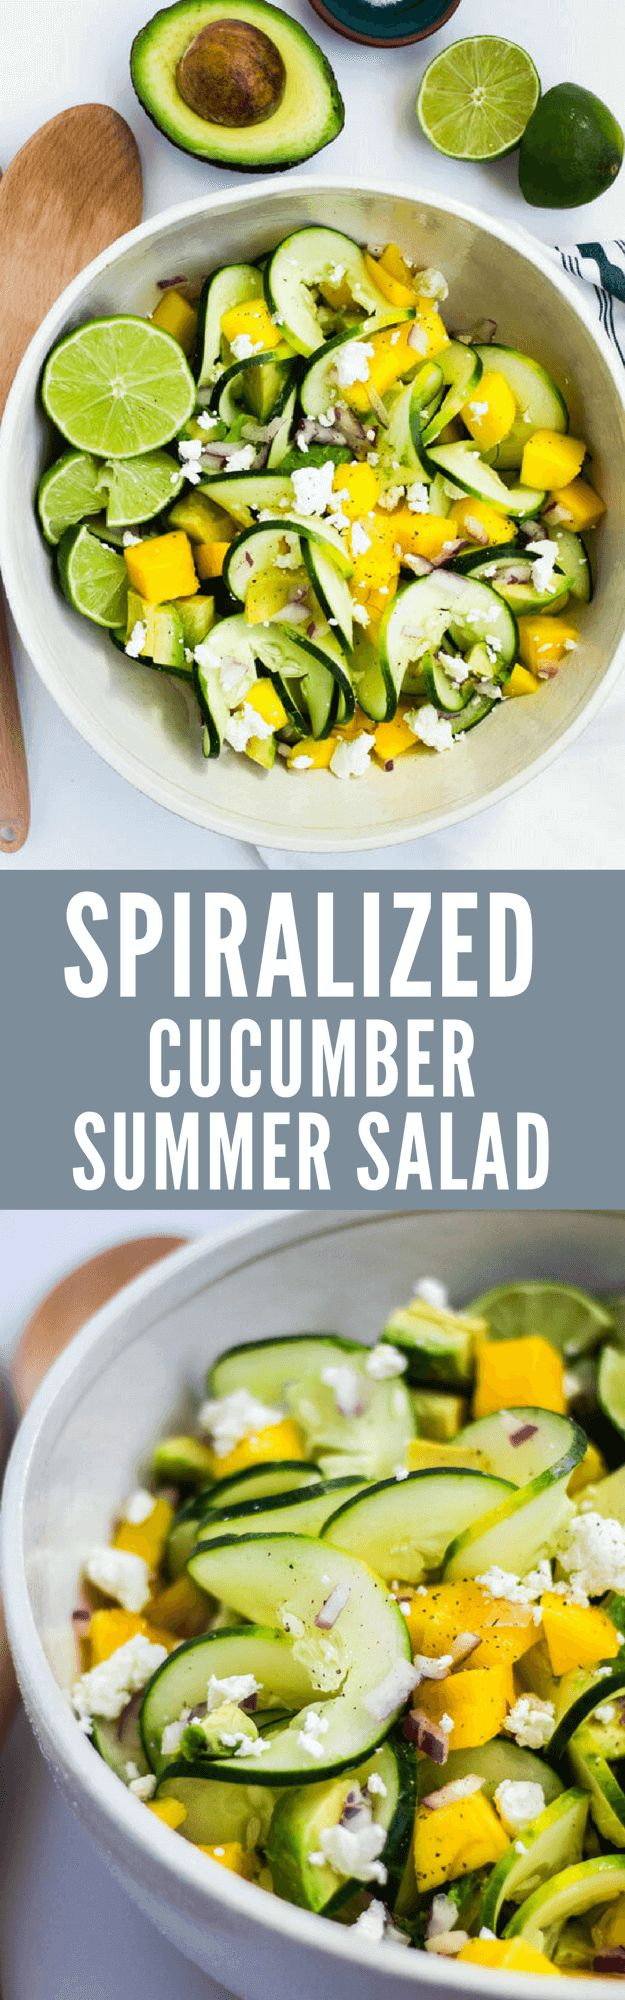 79 best Spiralized images on Pinterest | Baking center, Cashew ...